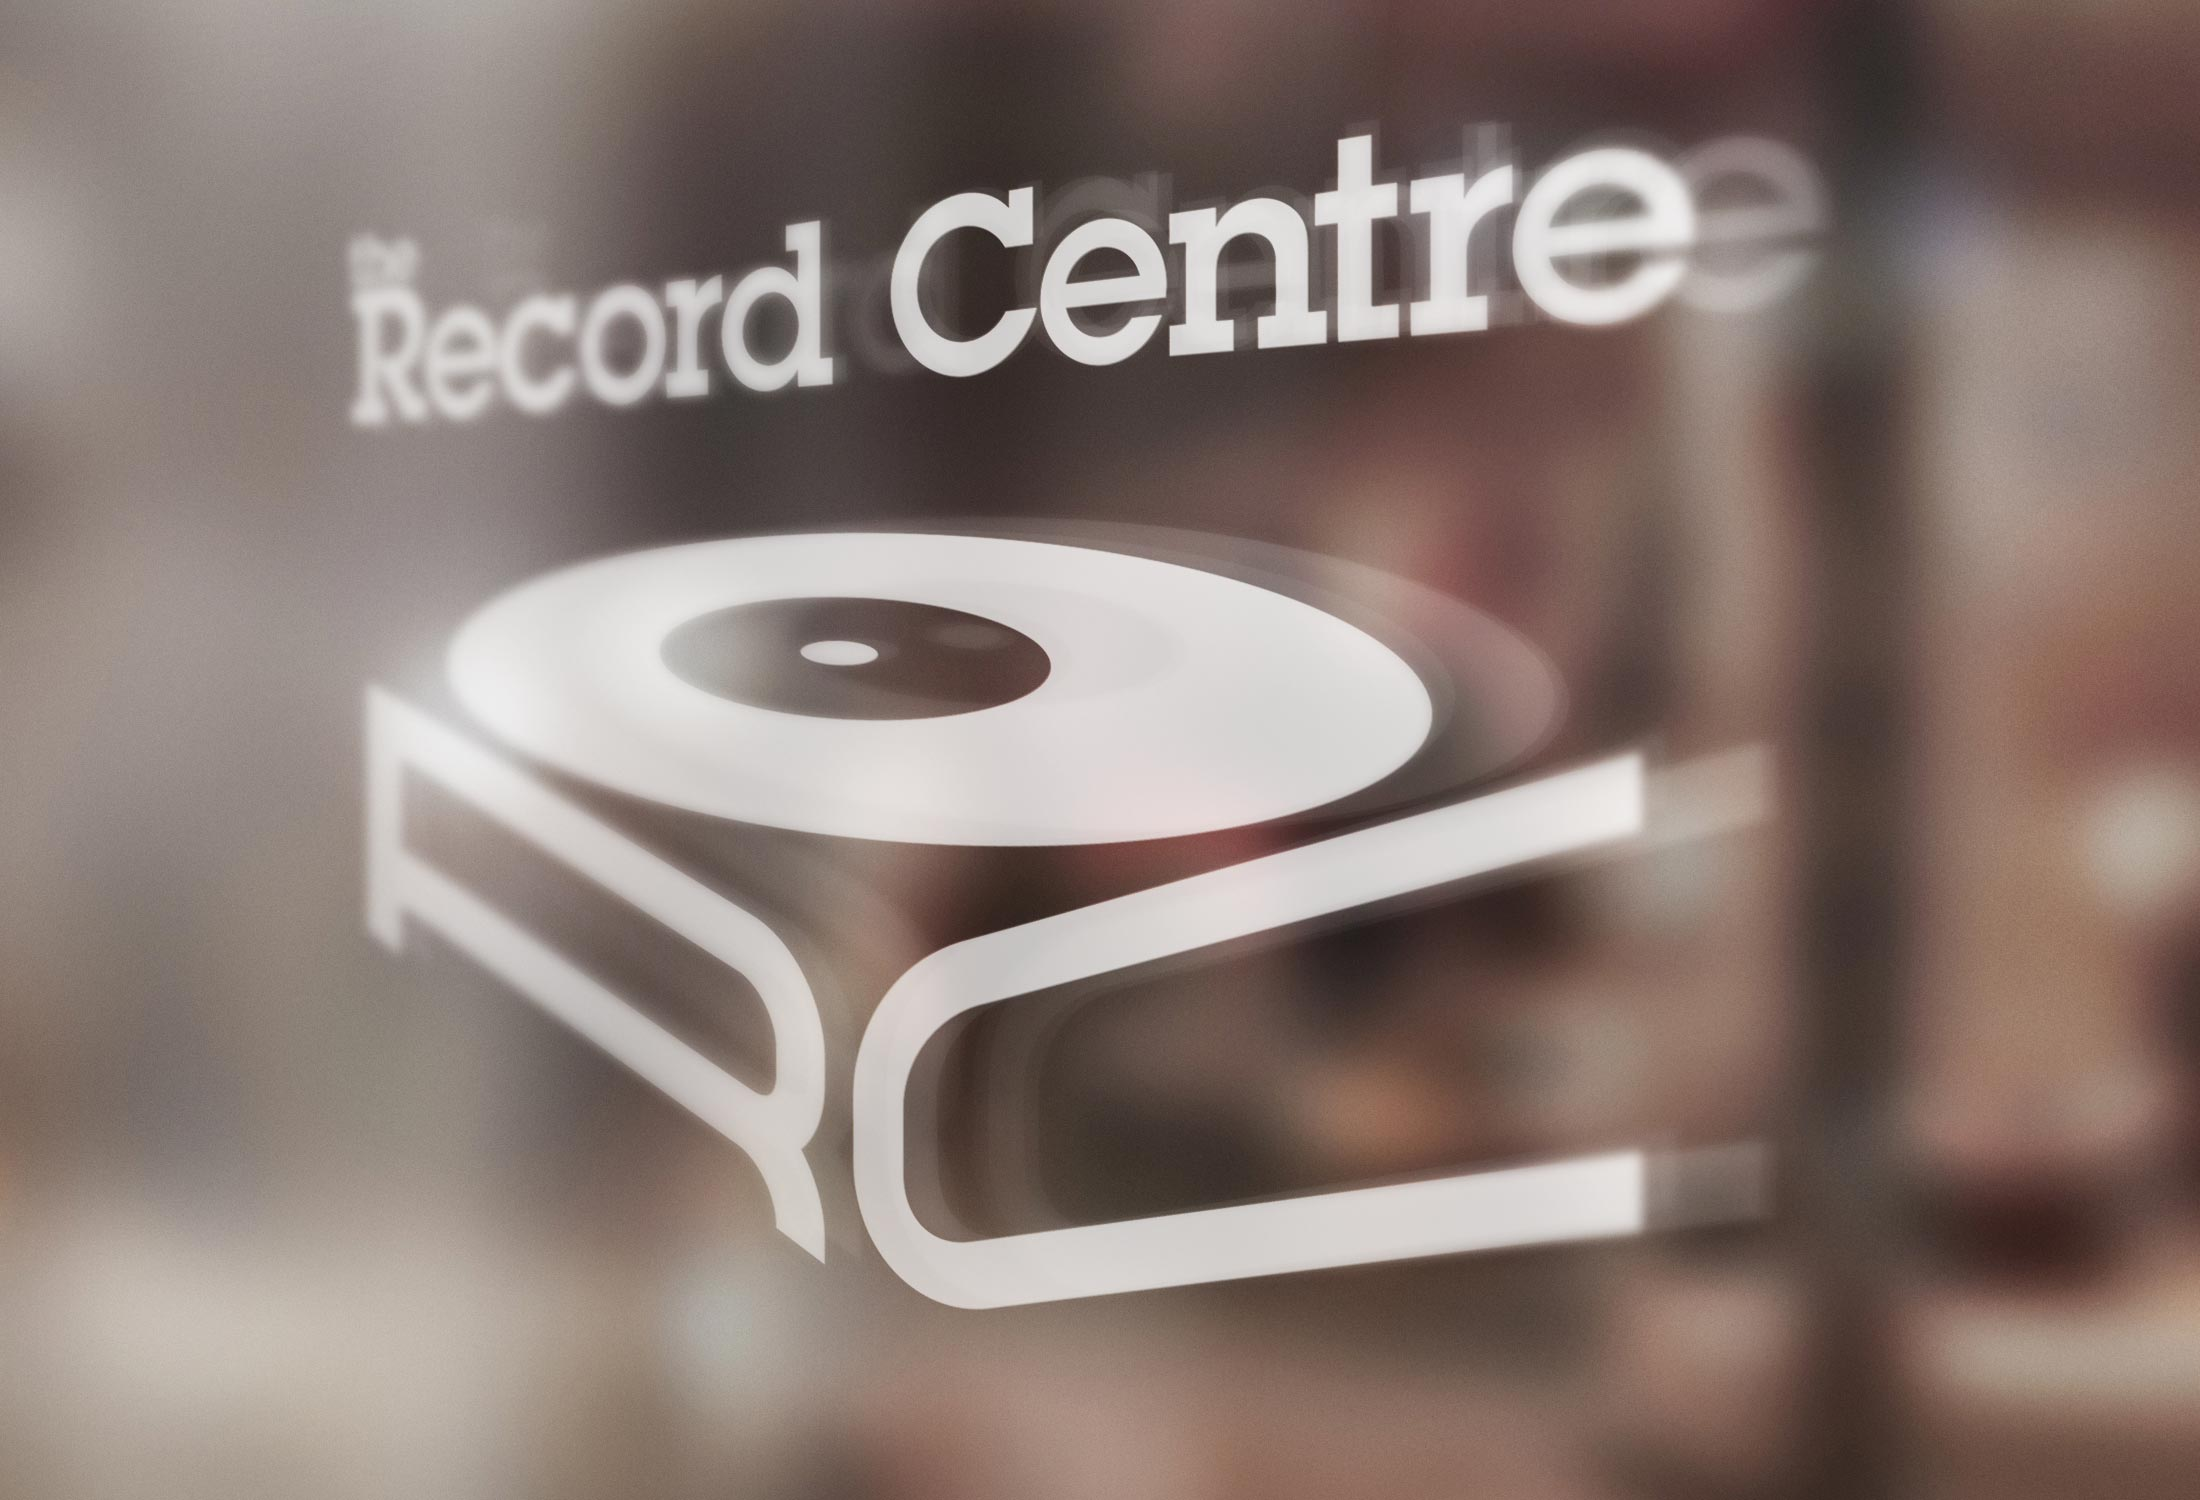 Logo for the Record Centre on a shop window